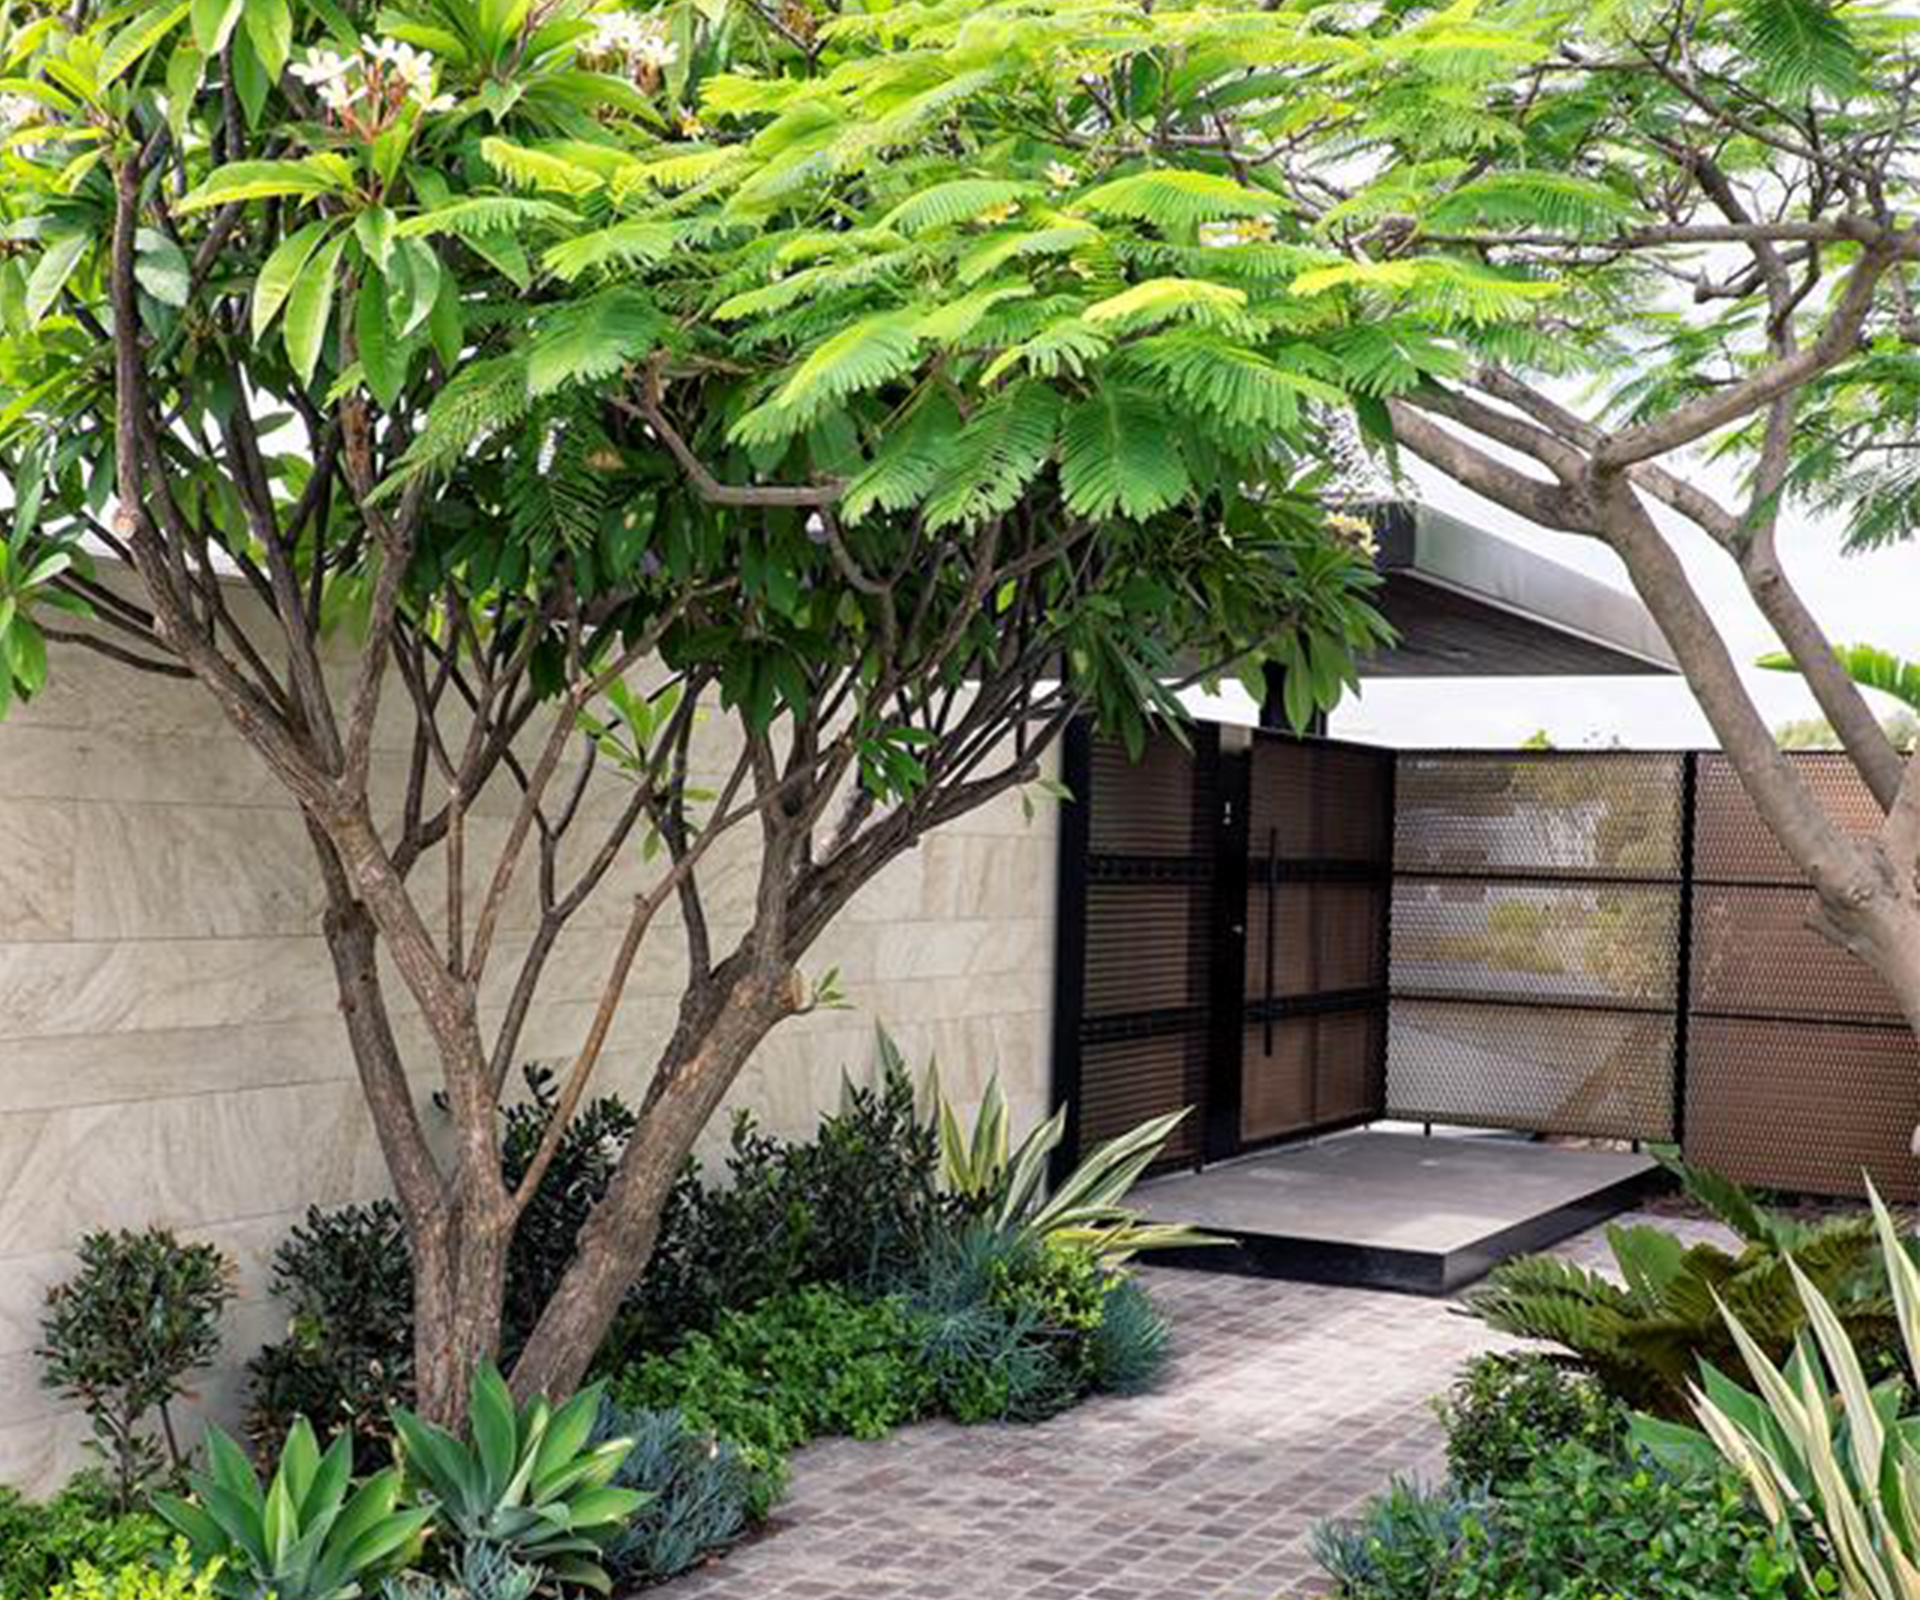 10 trees to plant in backyards big or